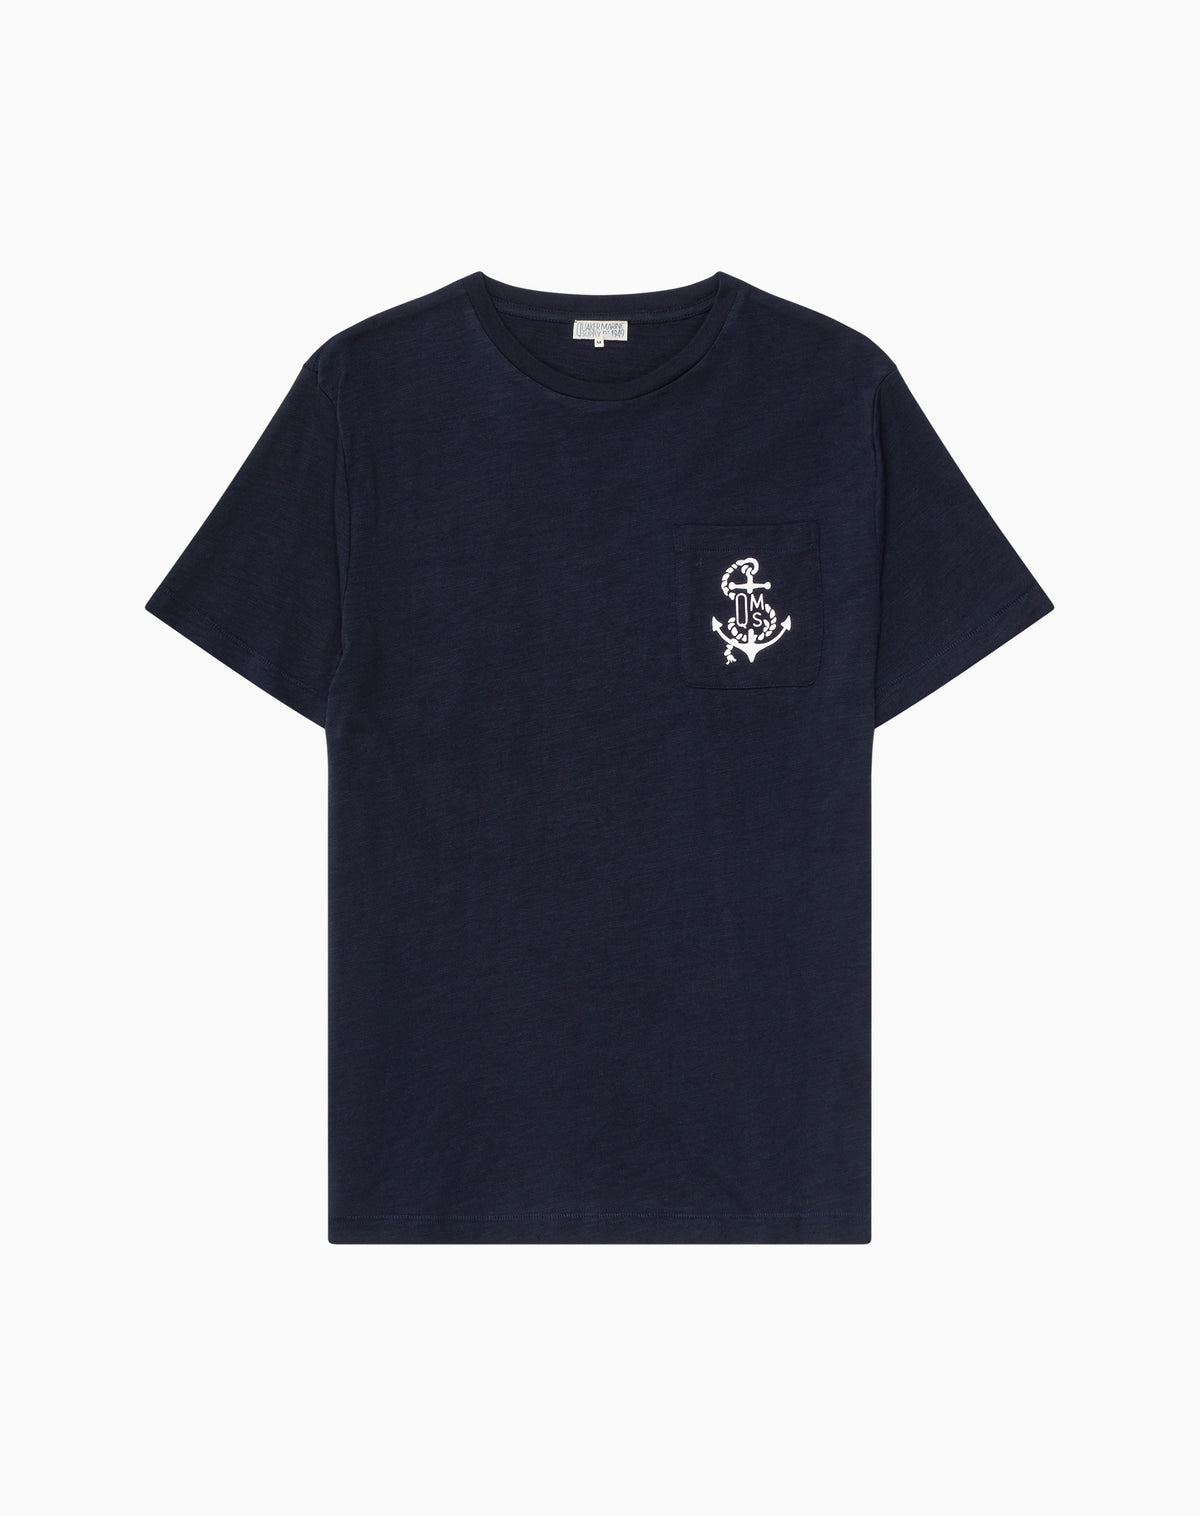 Catalogue Tee